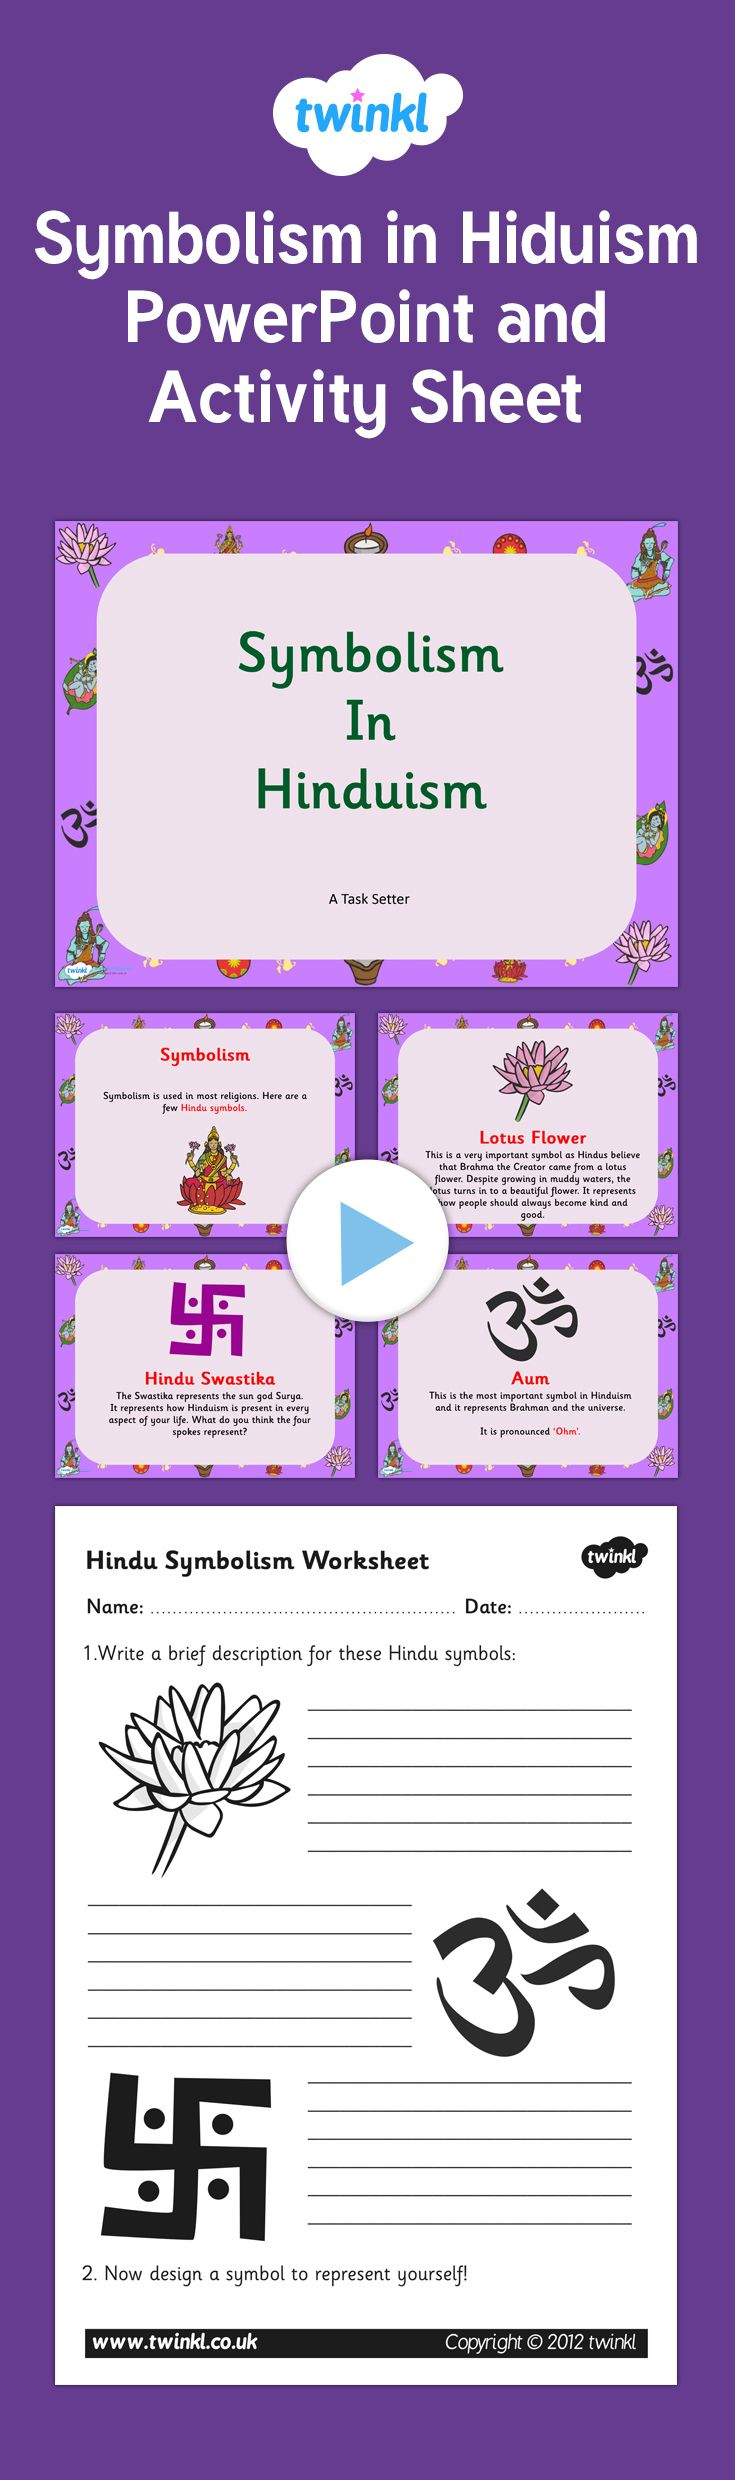 Symbolism in Hinduism PowerPoint and Activity Sheet Pack - This fantastic  pack includes our symbolism in